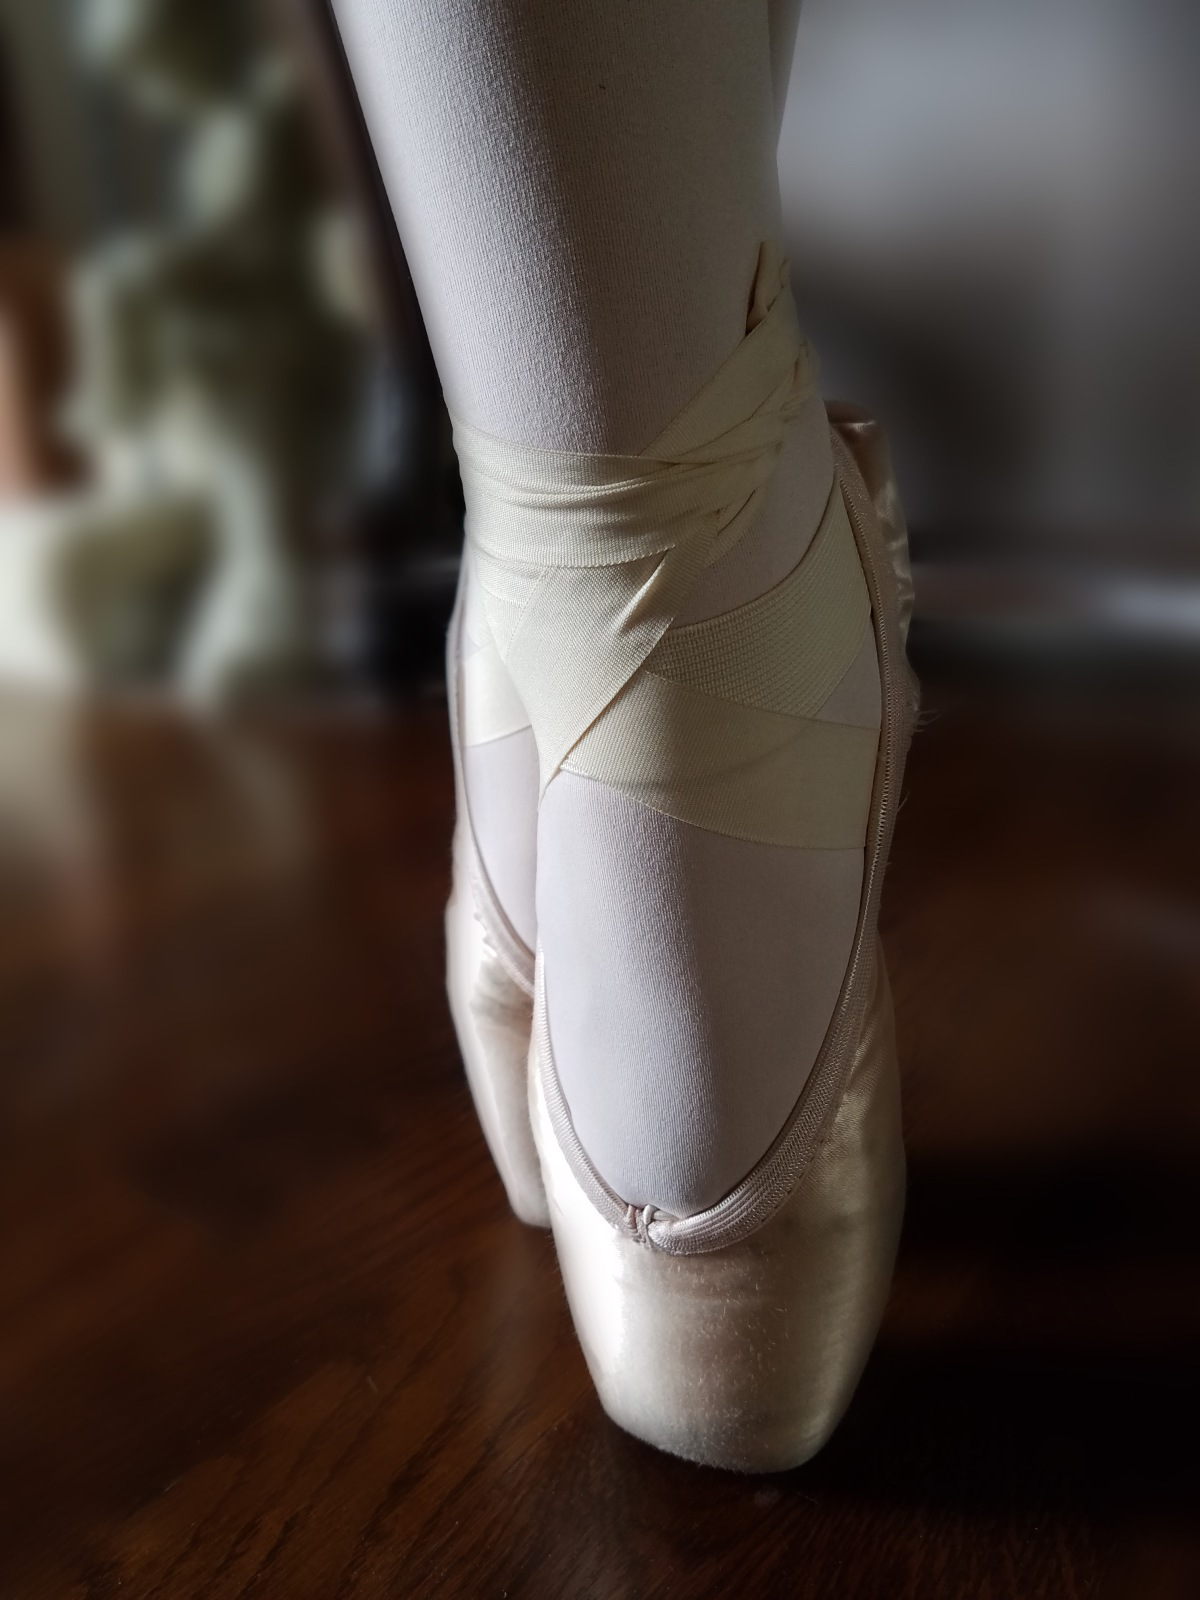 Pointe Shoes - Releve